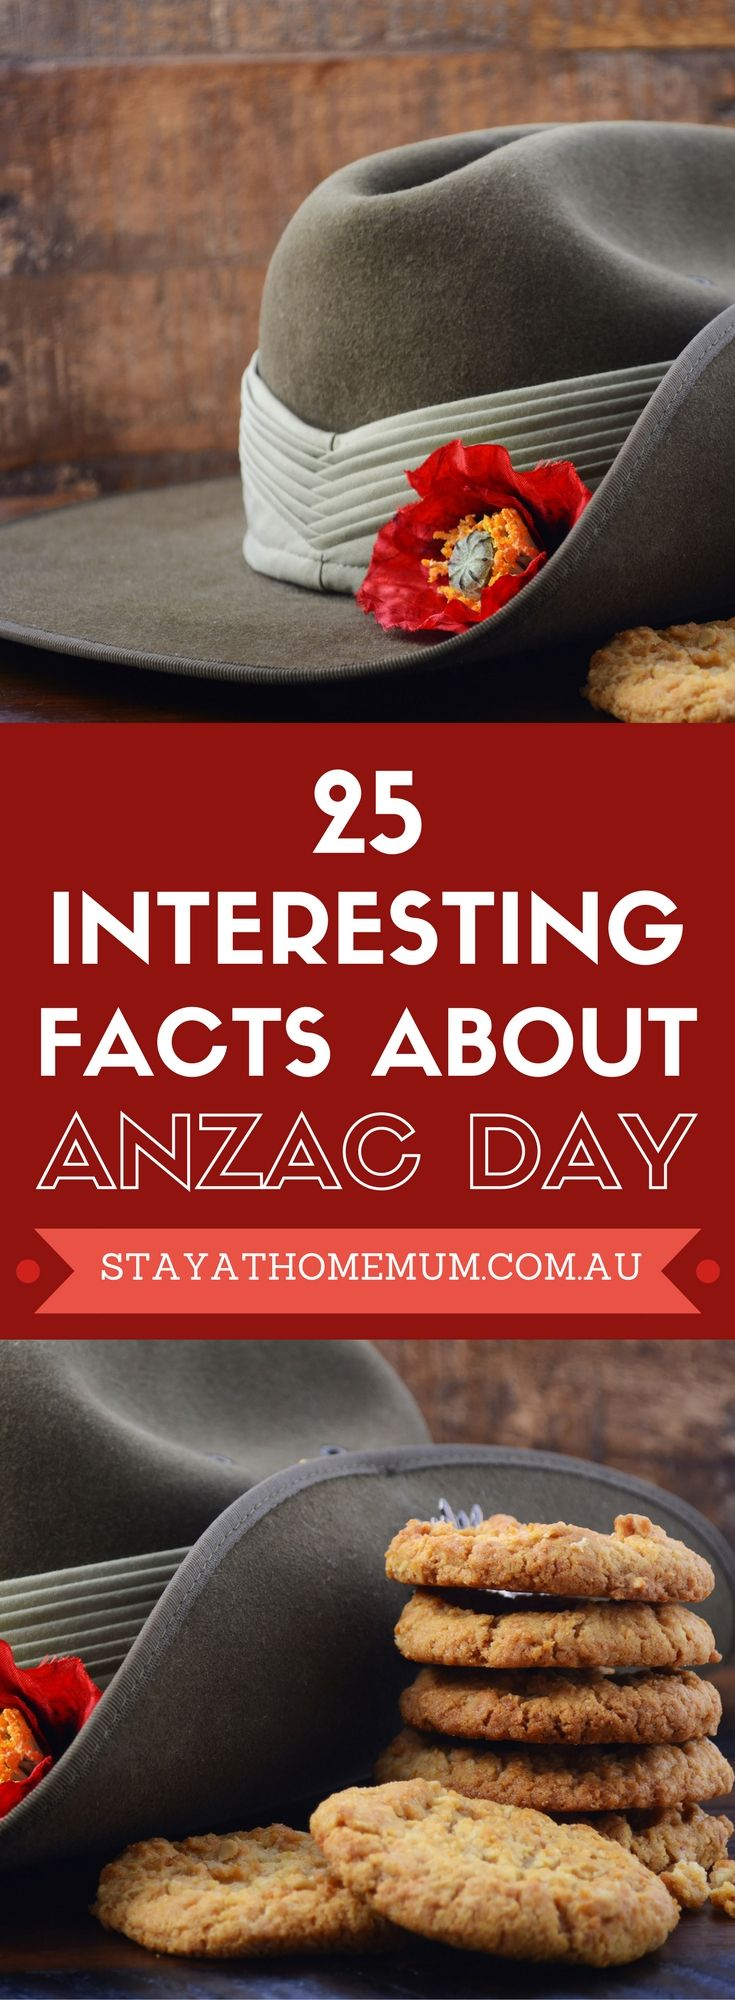 Why not showoff your ANZAC day knowledge (or learn a few things you didn't know) with these 25 interesting ANZAC day facts?